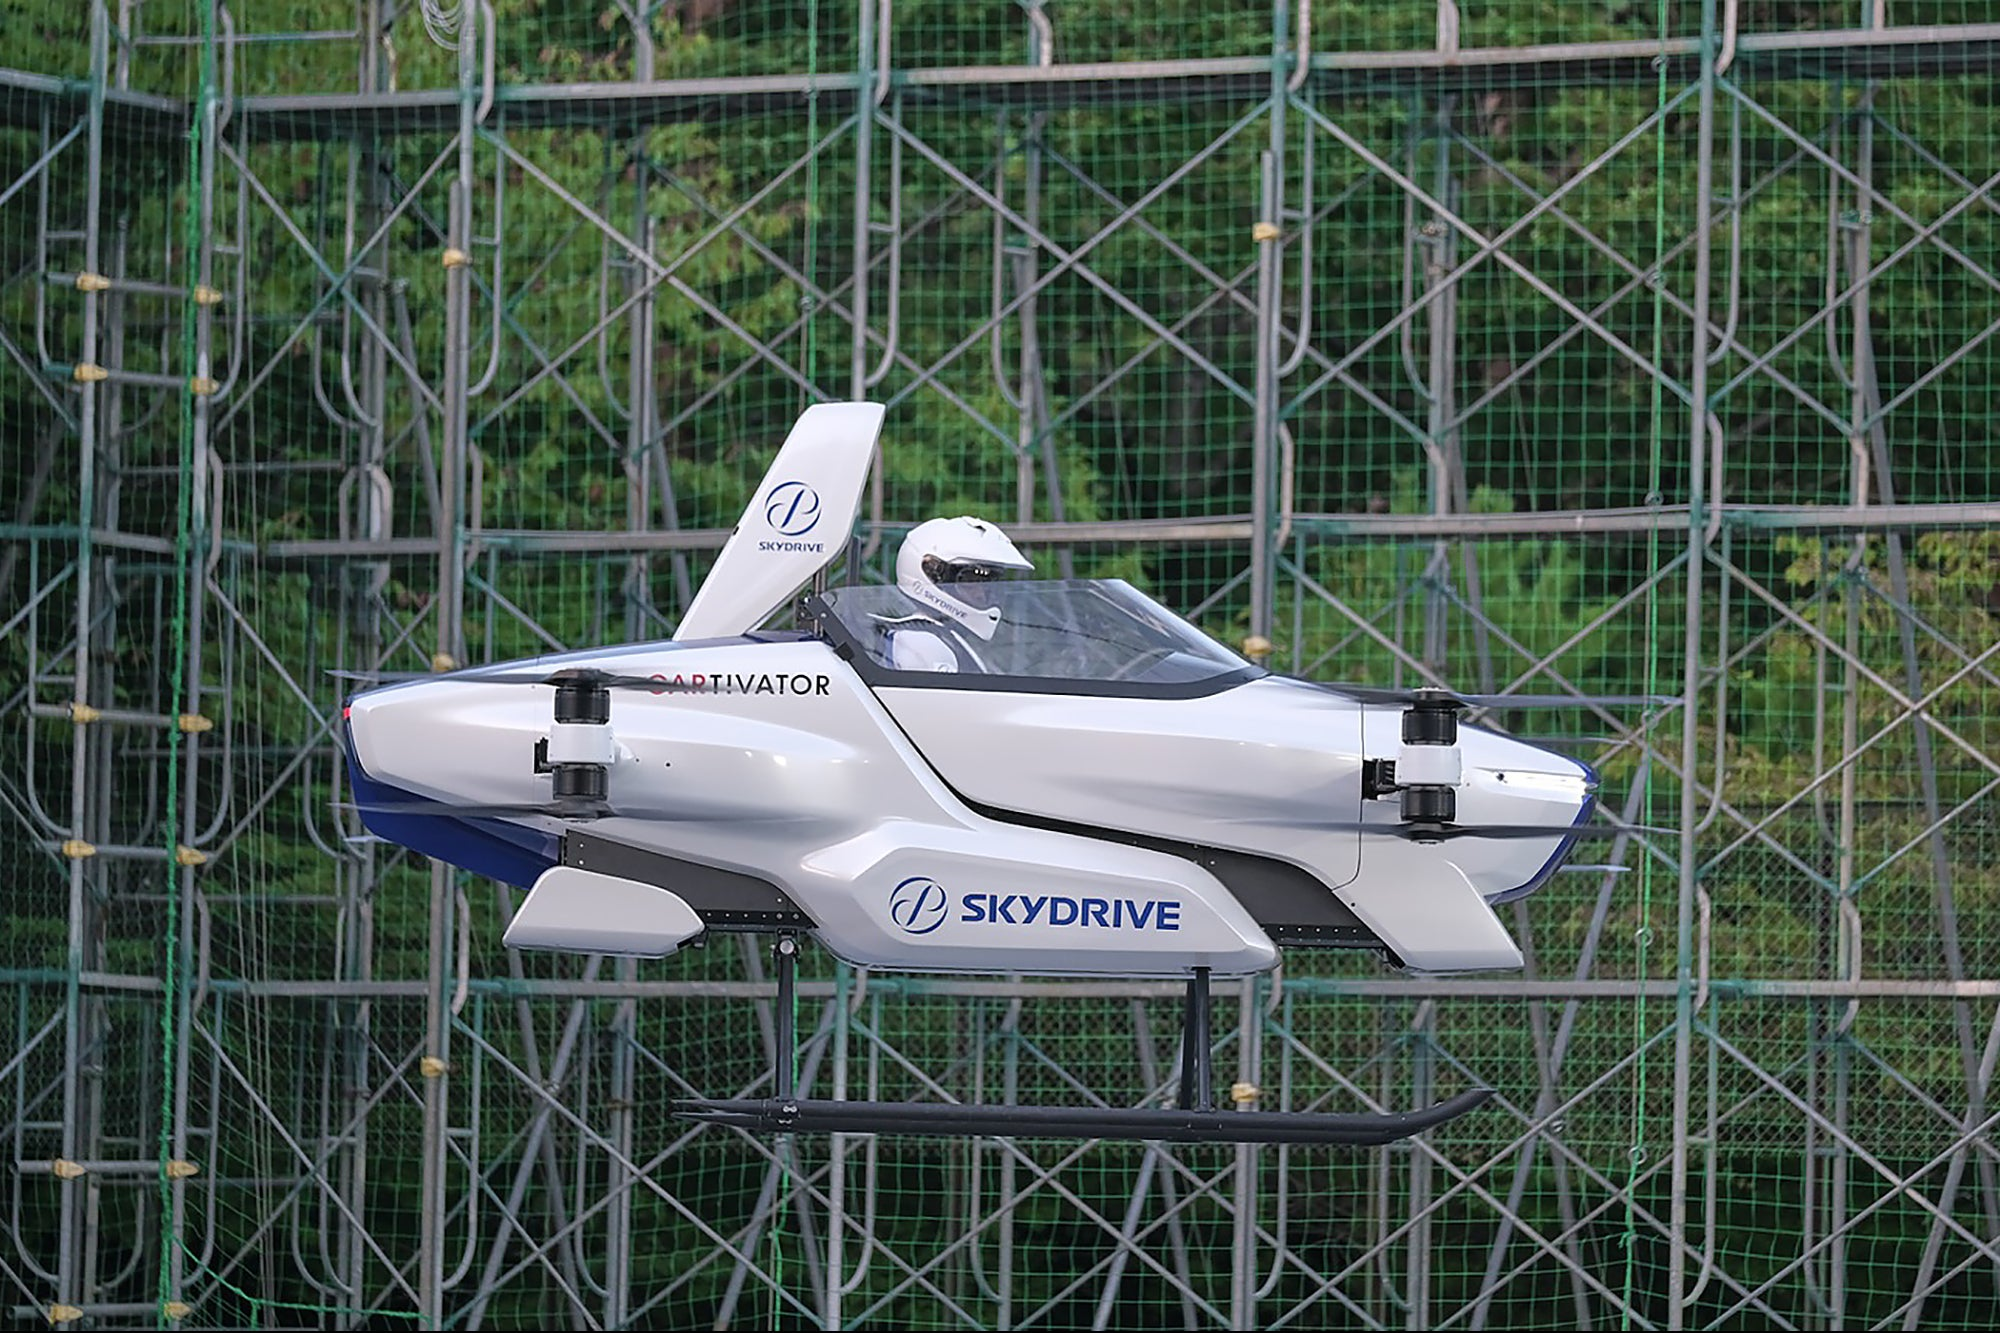 A Toyota-Backed Company Just Test Drove a Flying Car